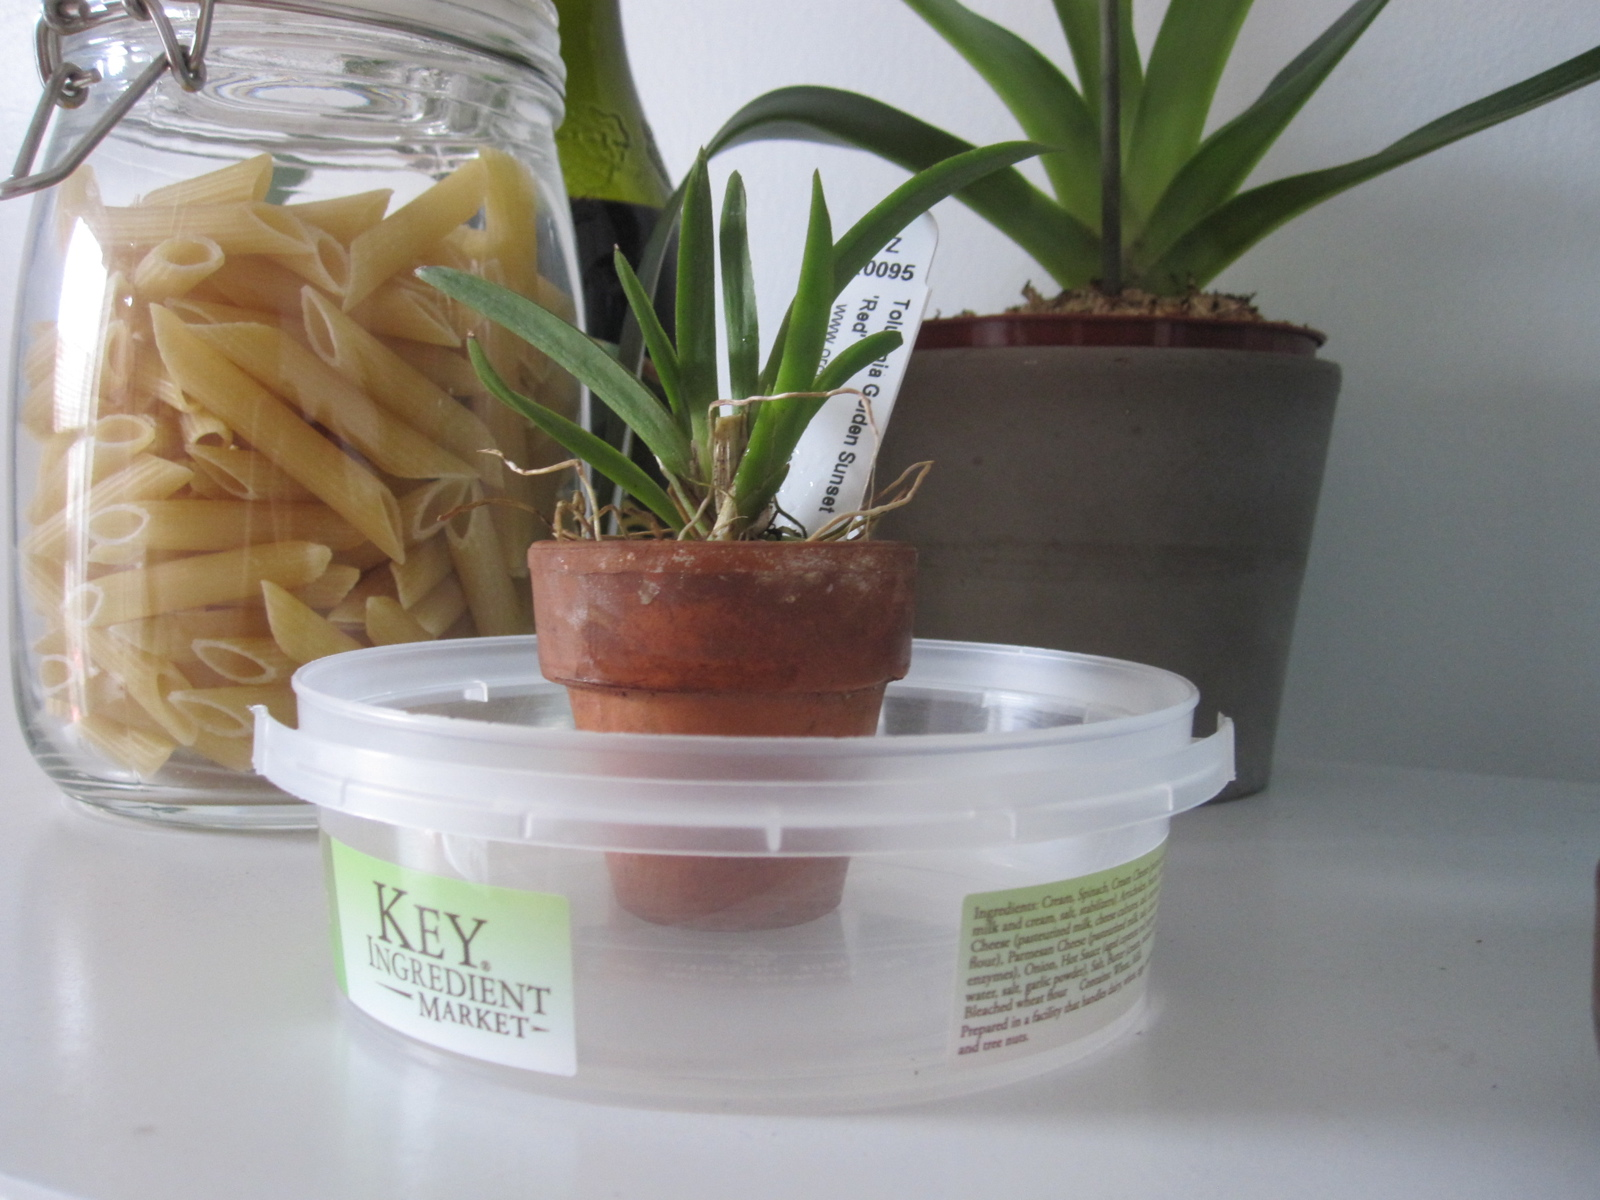 How to Make a Humidity Tray Brooklyn Orchids #694531